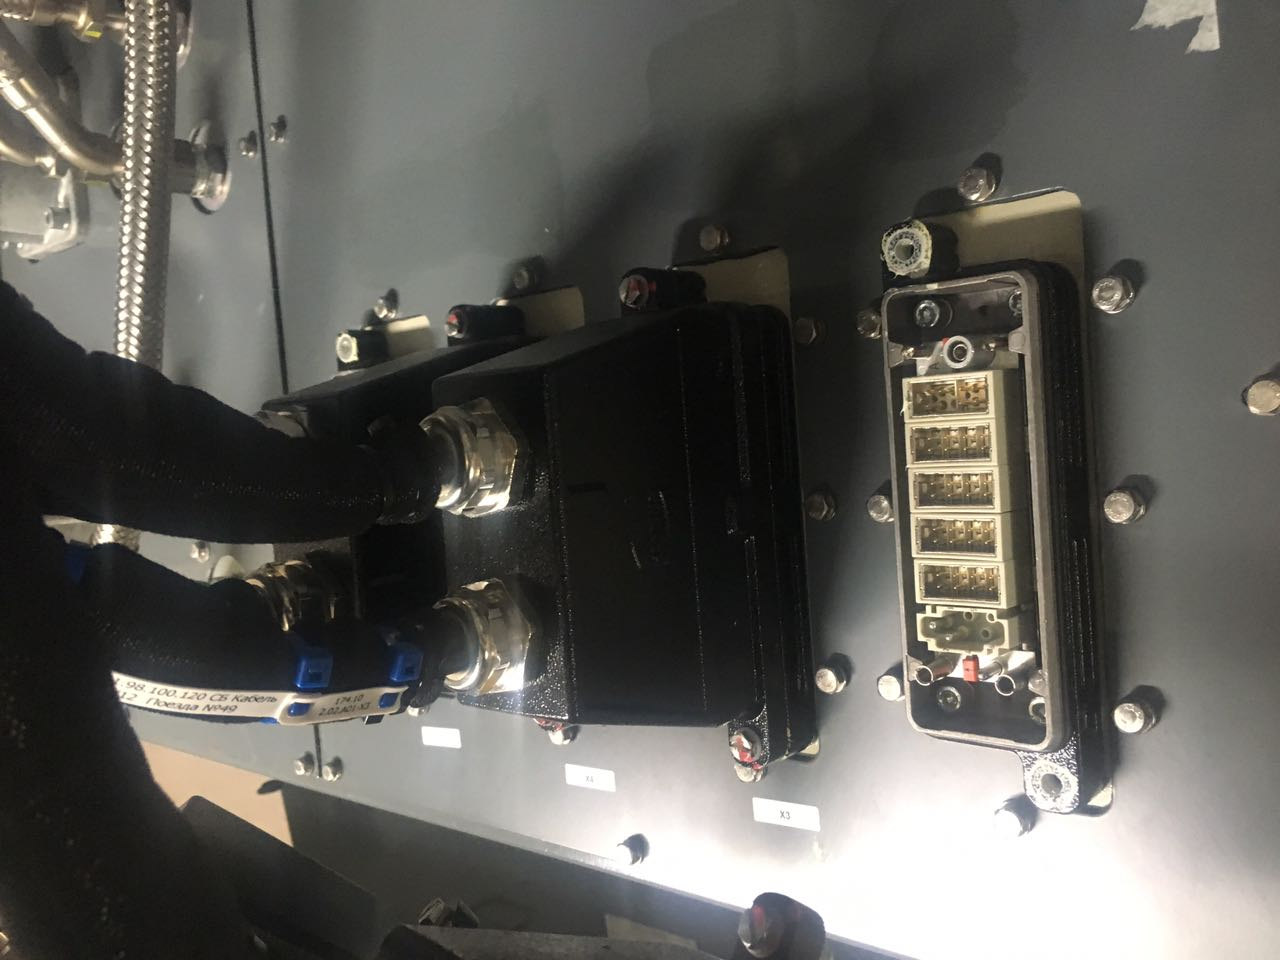 Ural Locomotives uses the Han® connector